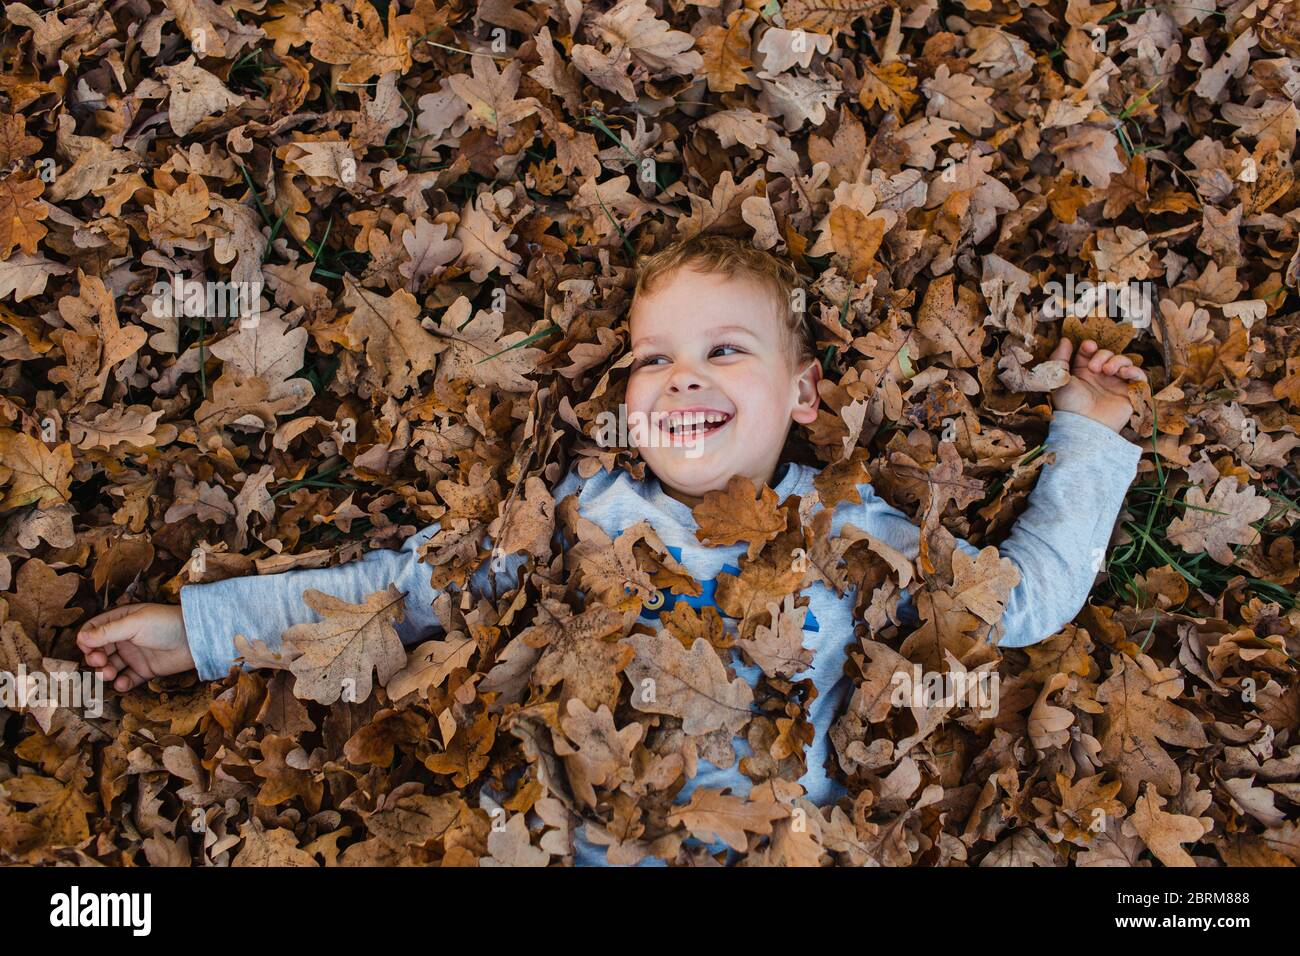 Young boy lying on autumn leaves on ground. Cute child covered in dry brown autumn leaves smiling and looking away. Stock Photo